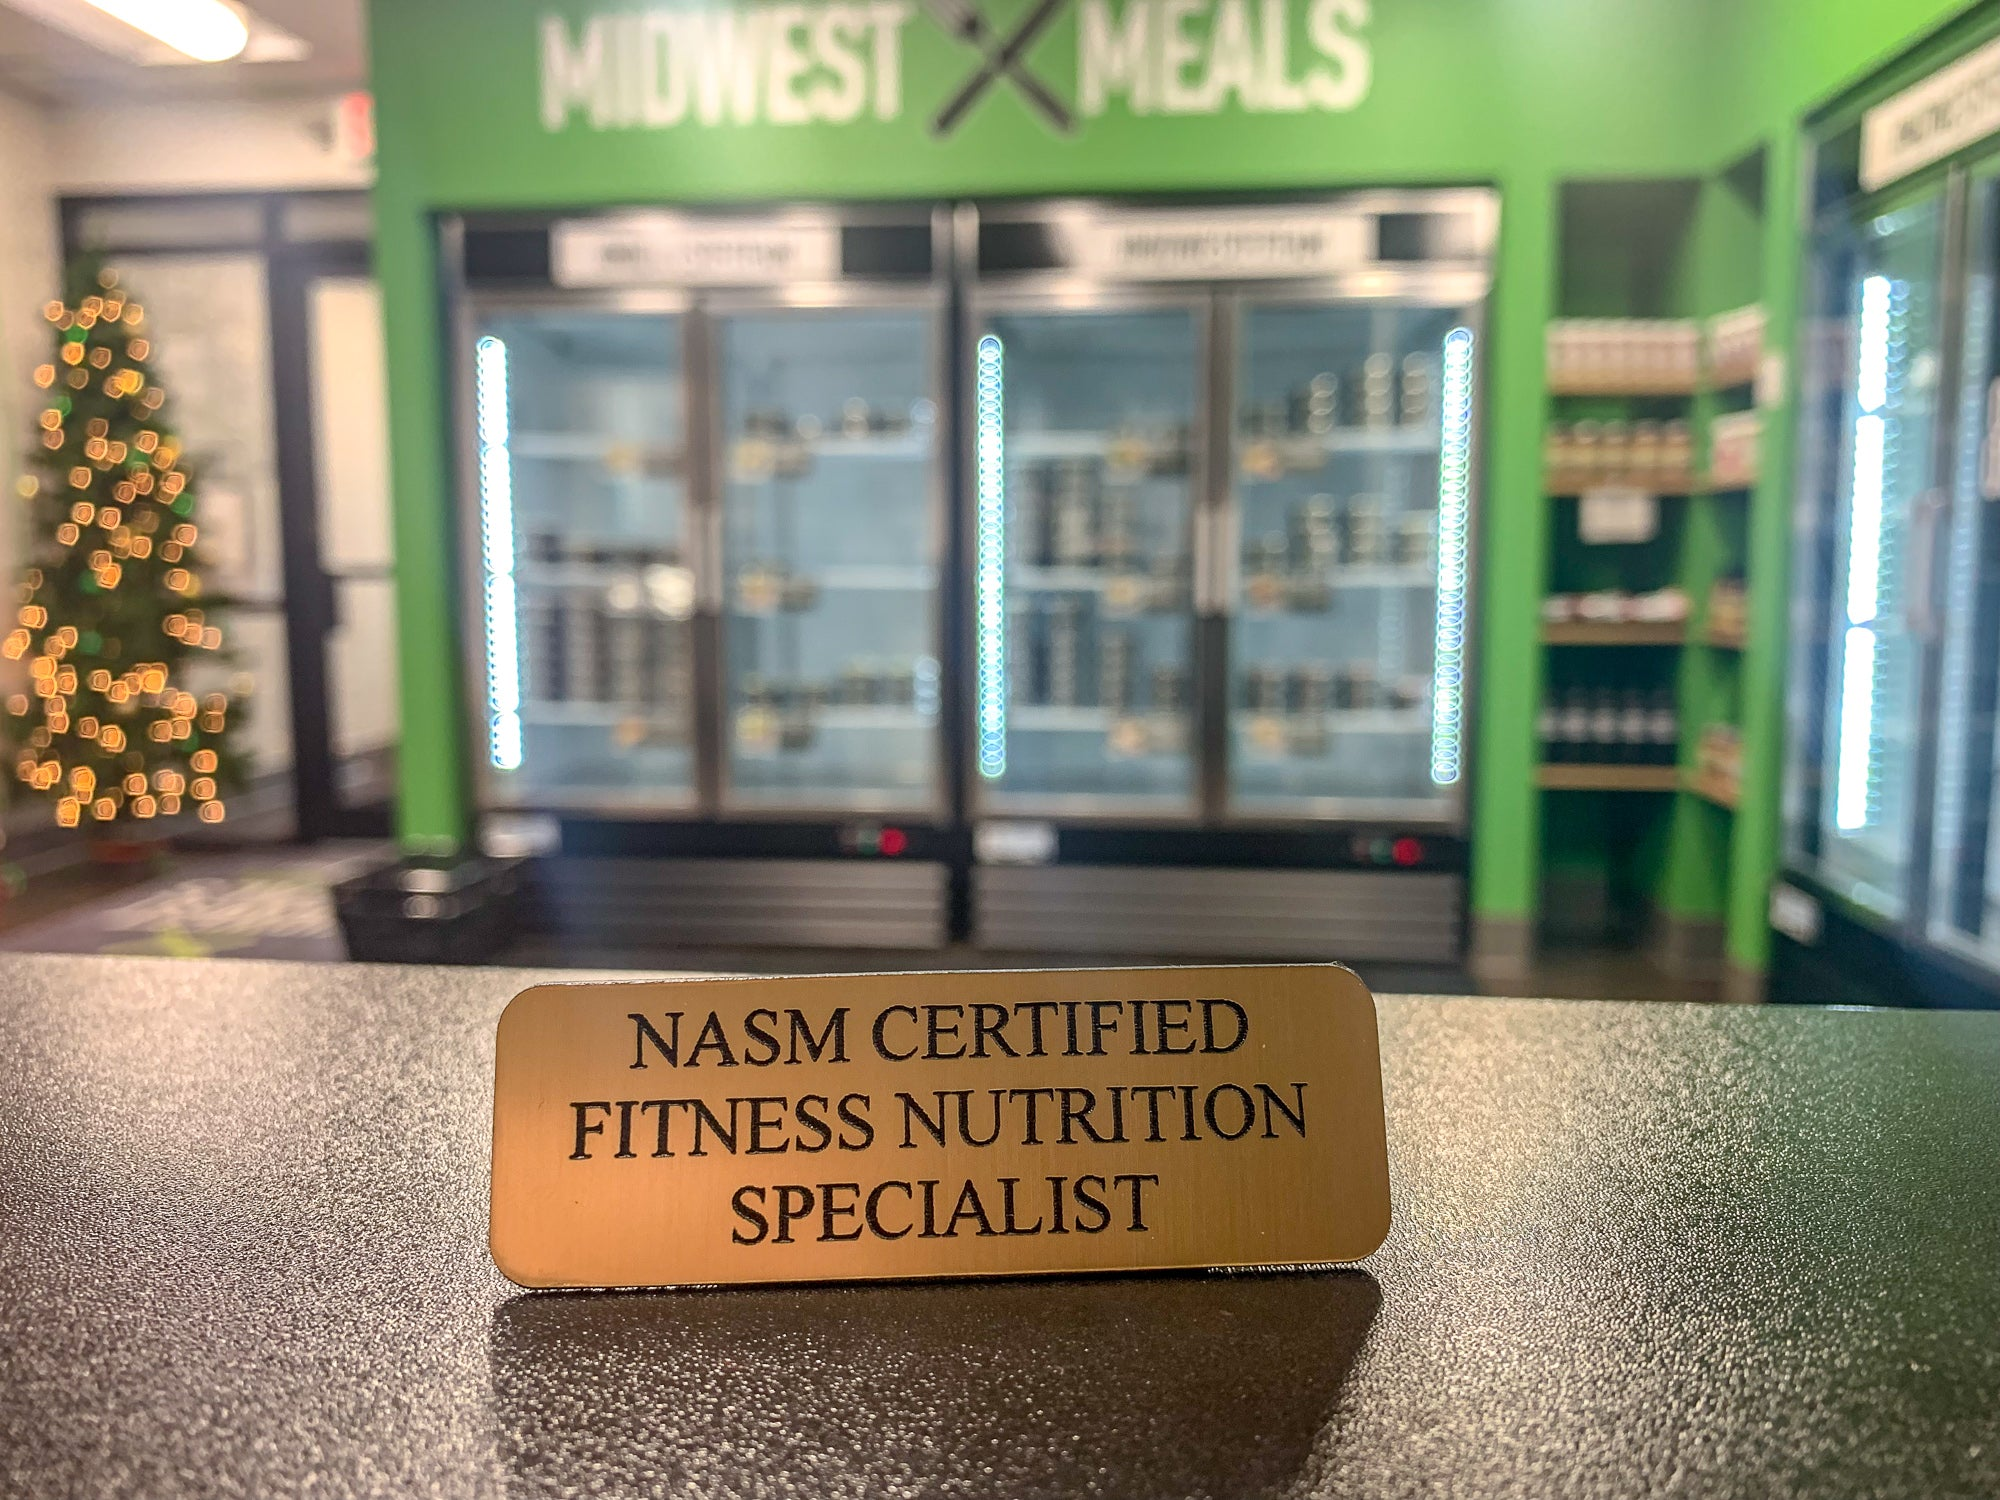 NASM Certified Fitness Nutrition Specialist